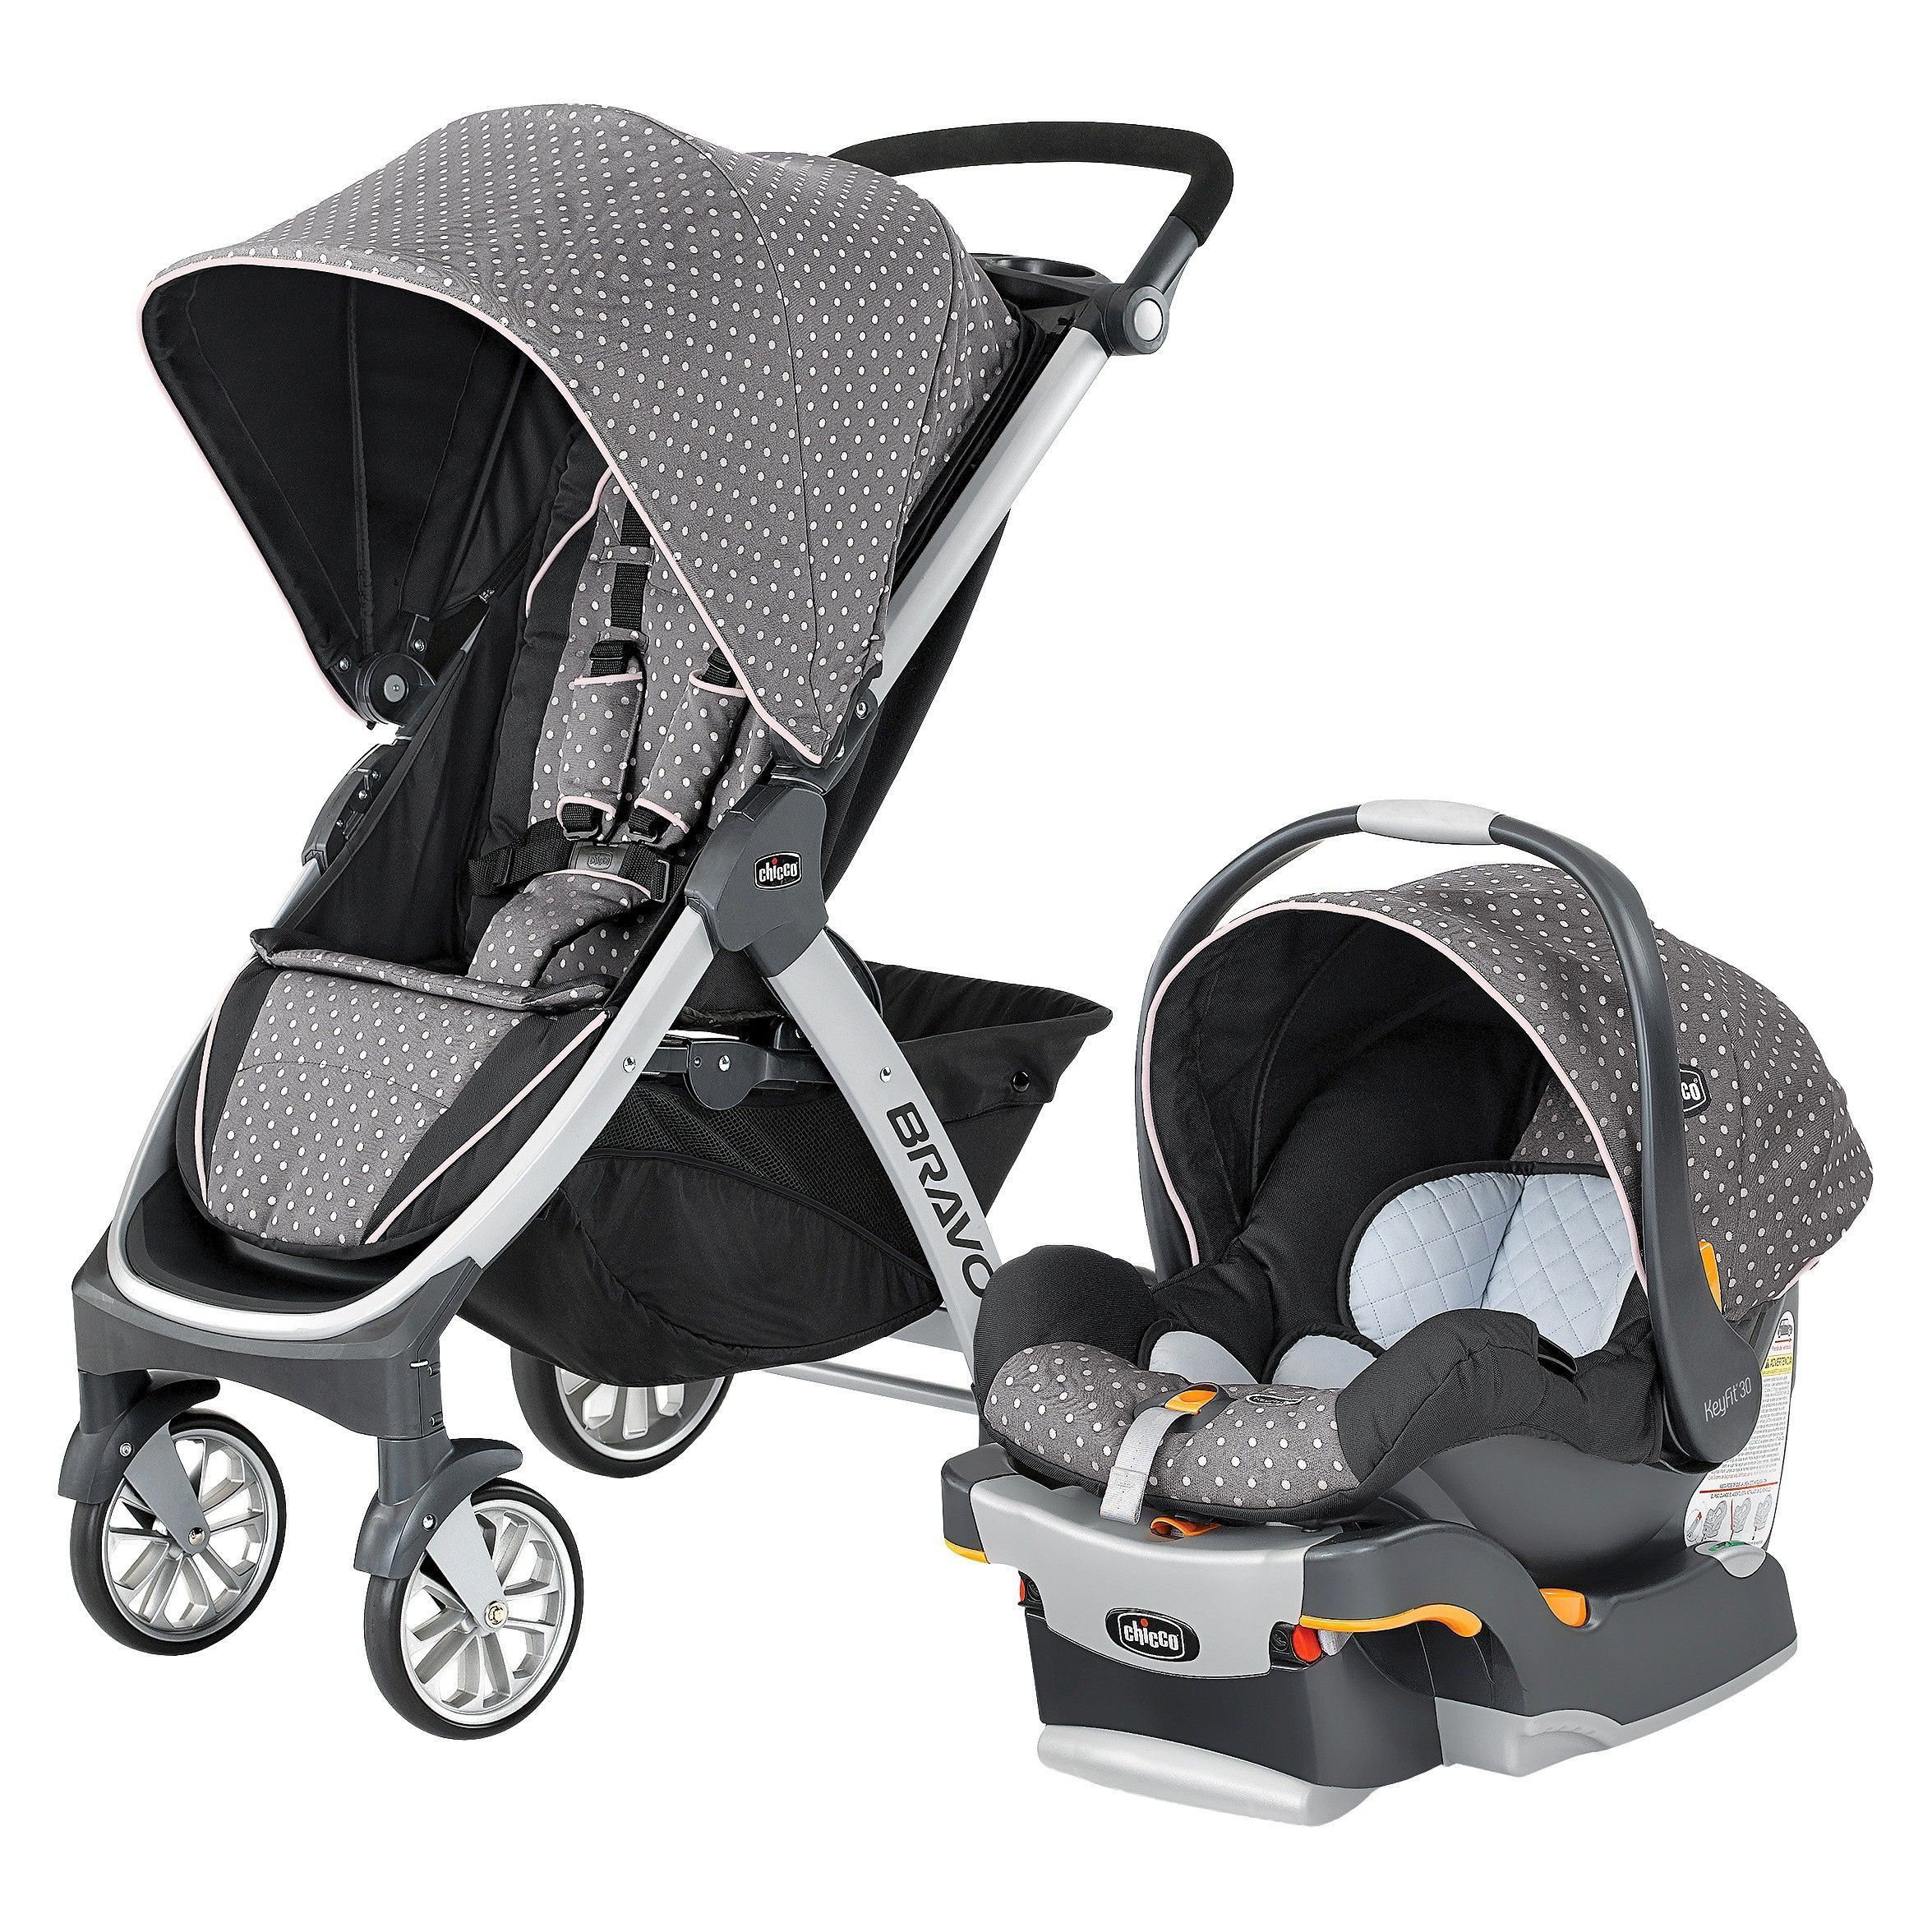 Chicco Bravo Travel System Target Chicco bravo trio